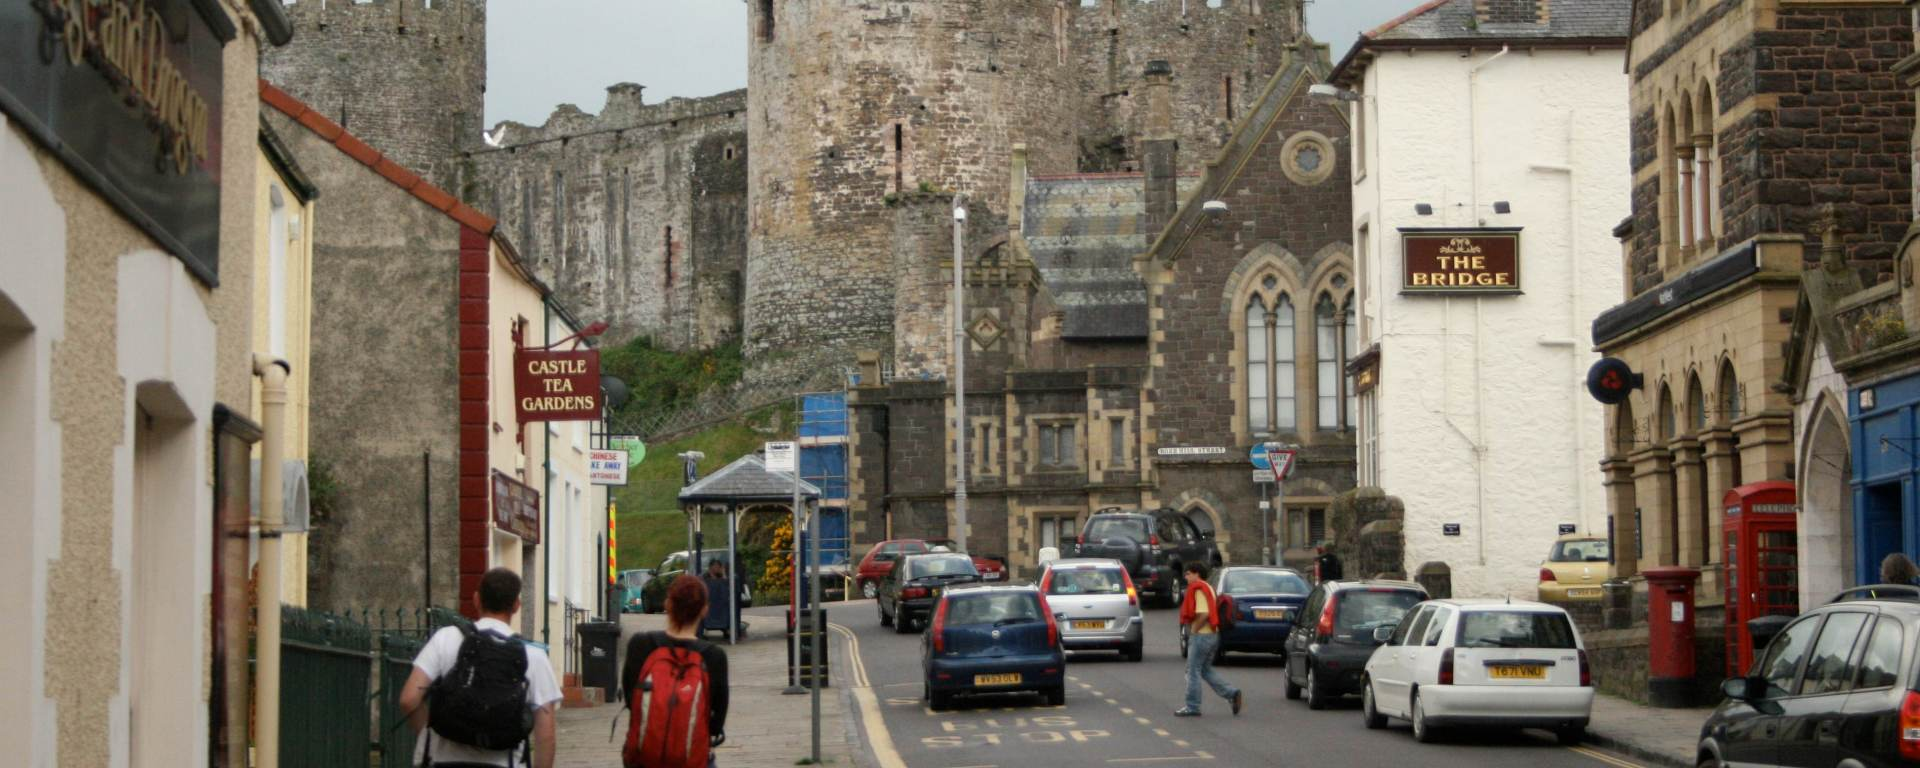 castles of wales, conwy castle, north wales, travel photography, travel photos, wales photography